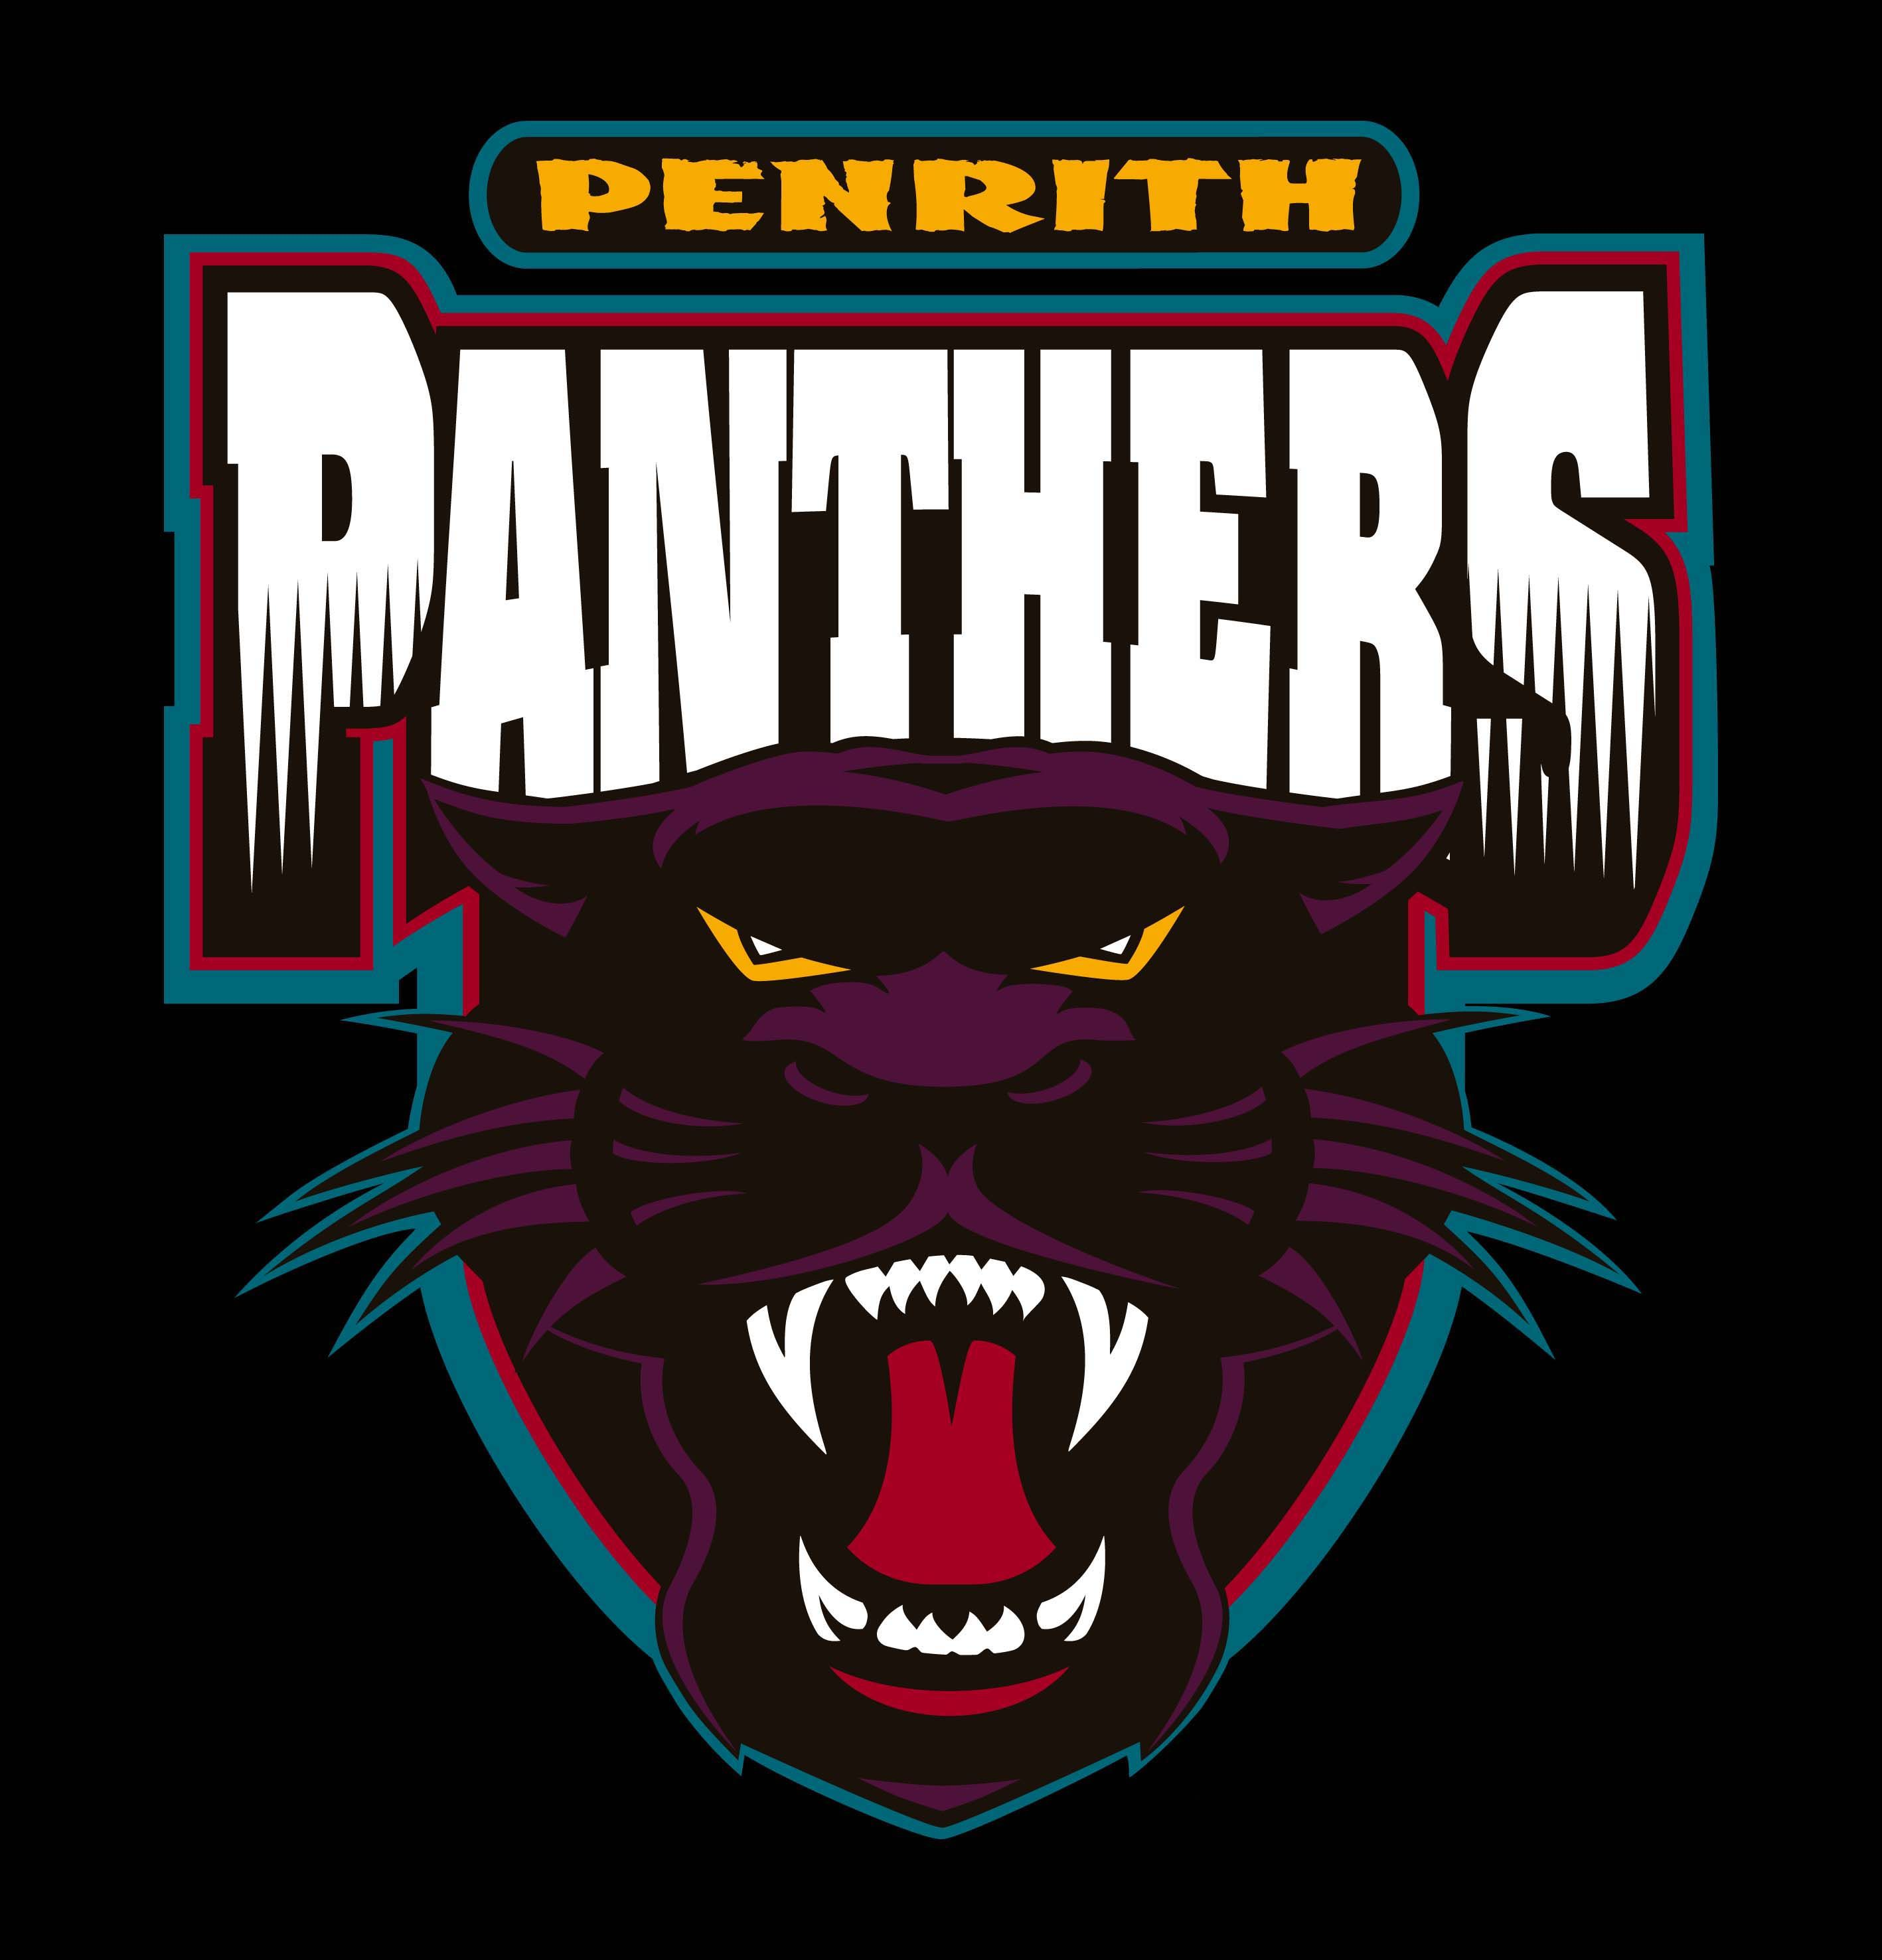 league Penrith panthers, Panthers, Rugby league